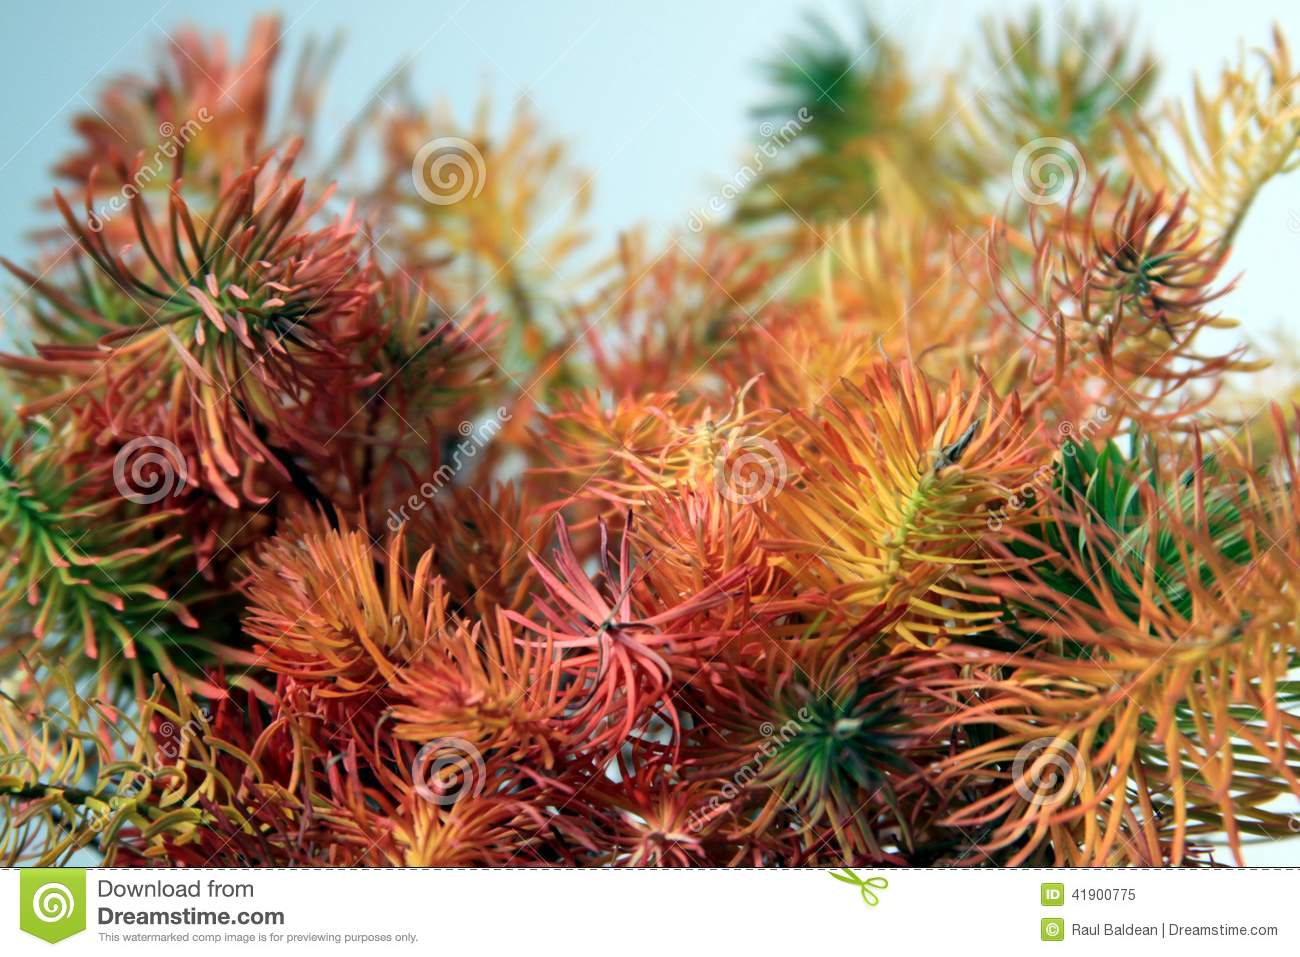 Coloured plants on white background 02